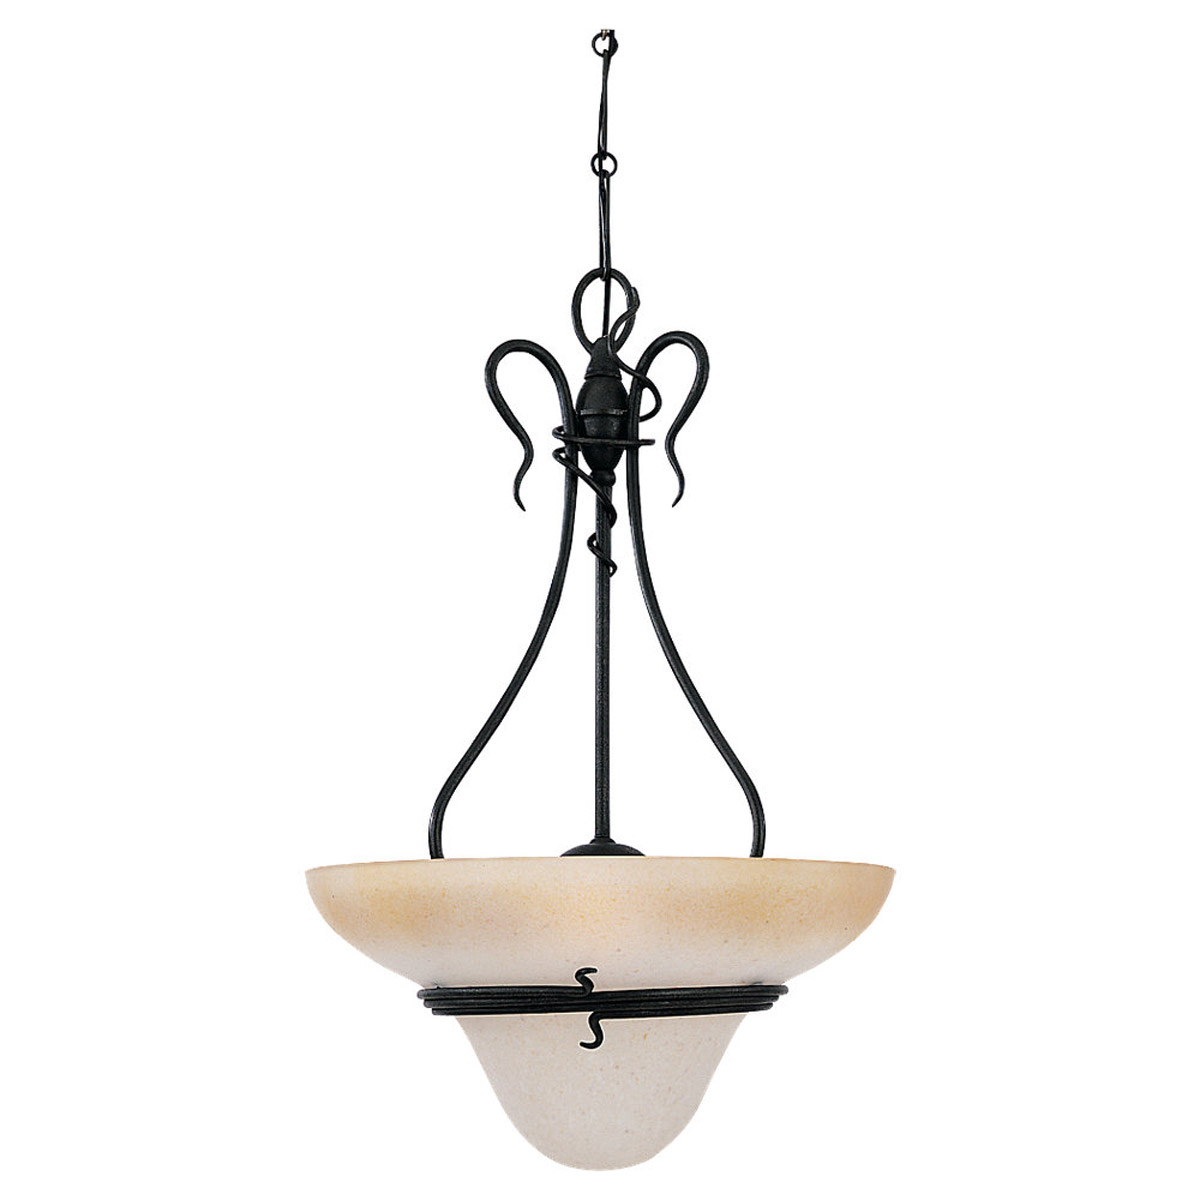 Sea Gull Lighting Saranac Lake 3 Light Pendant in Forged Iron 6614-185